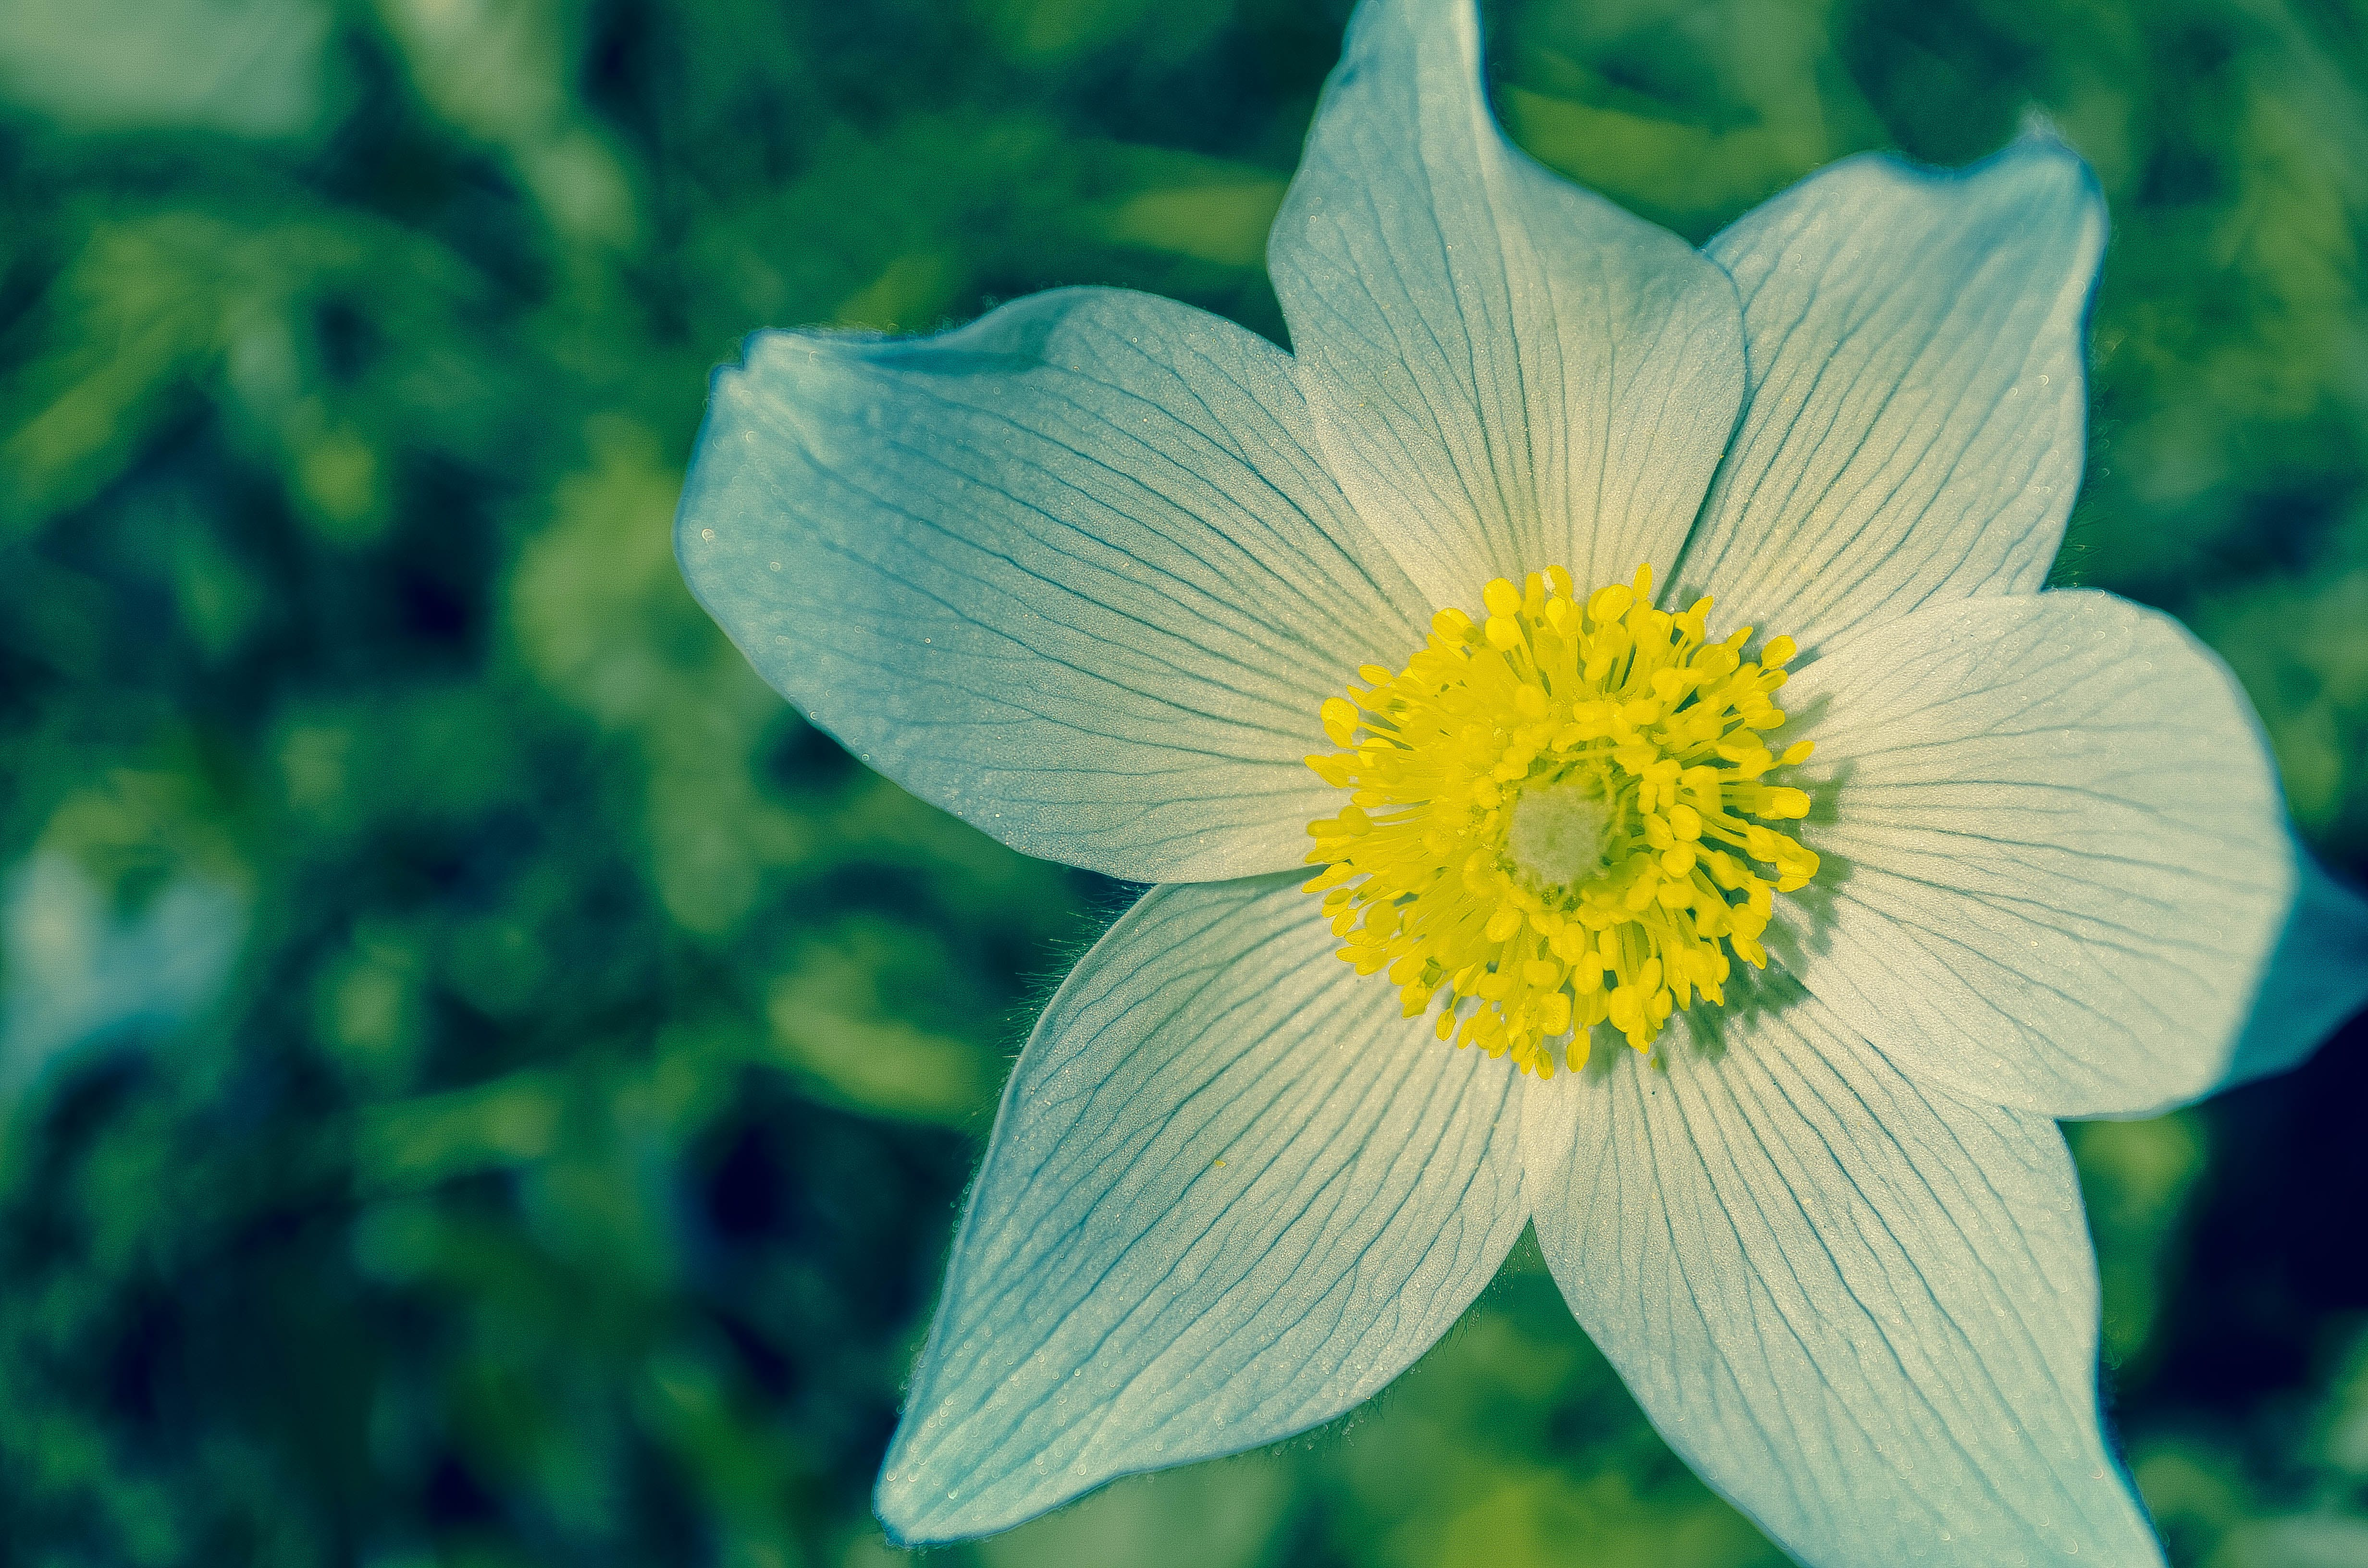 White and Yellow Flower during Daytime